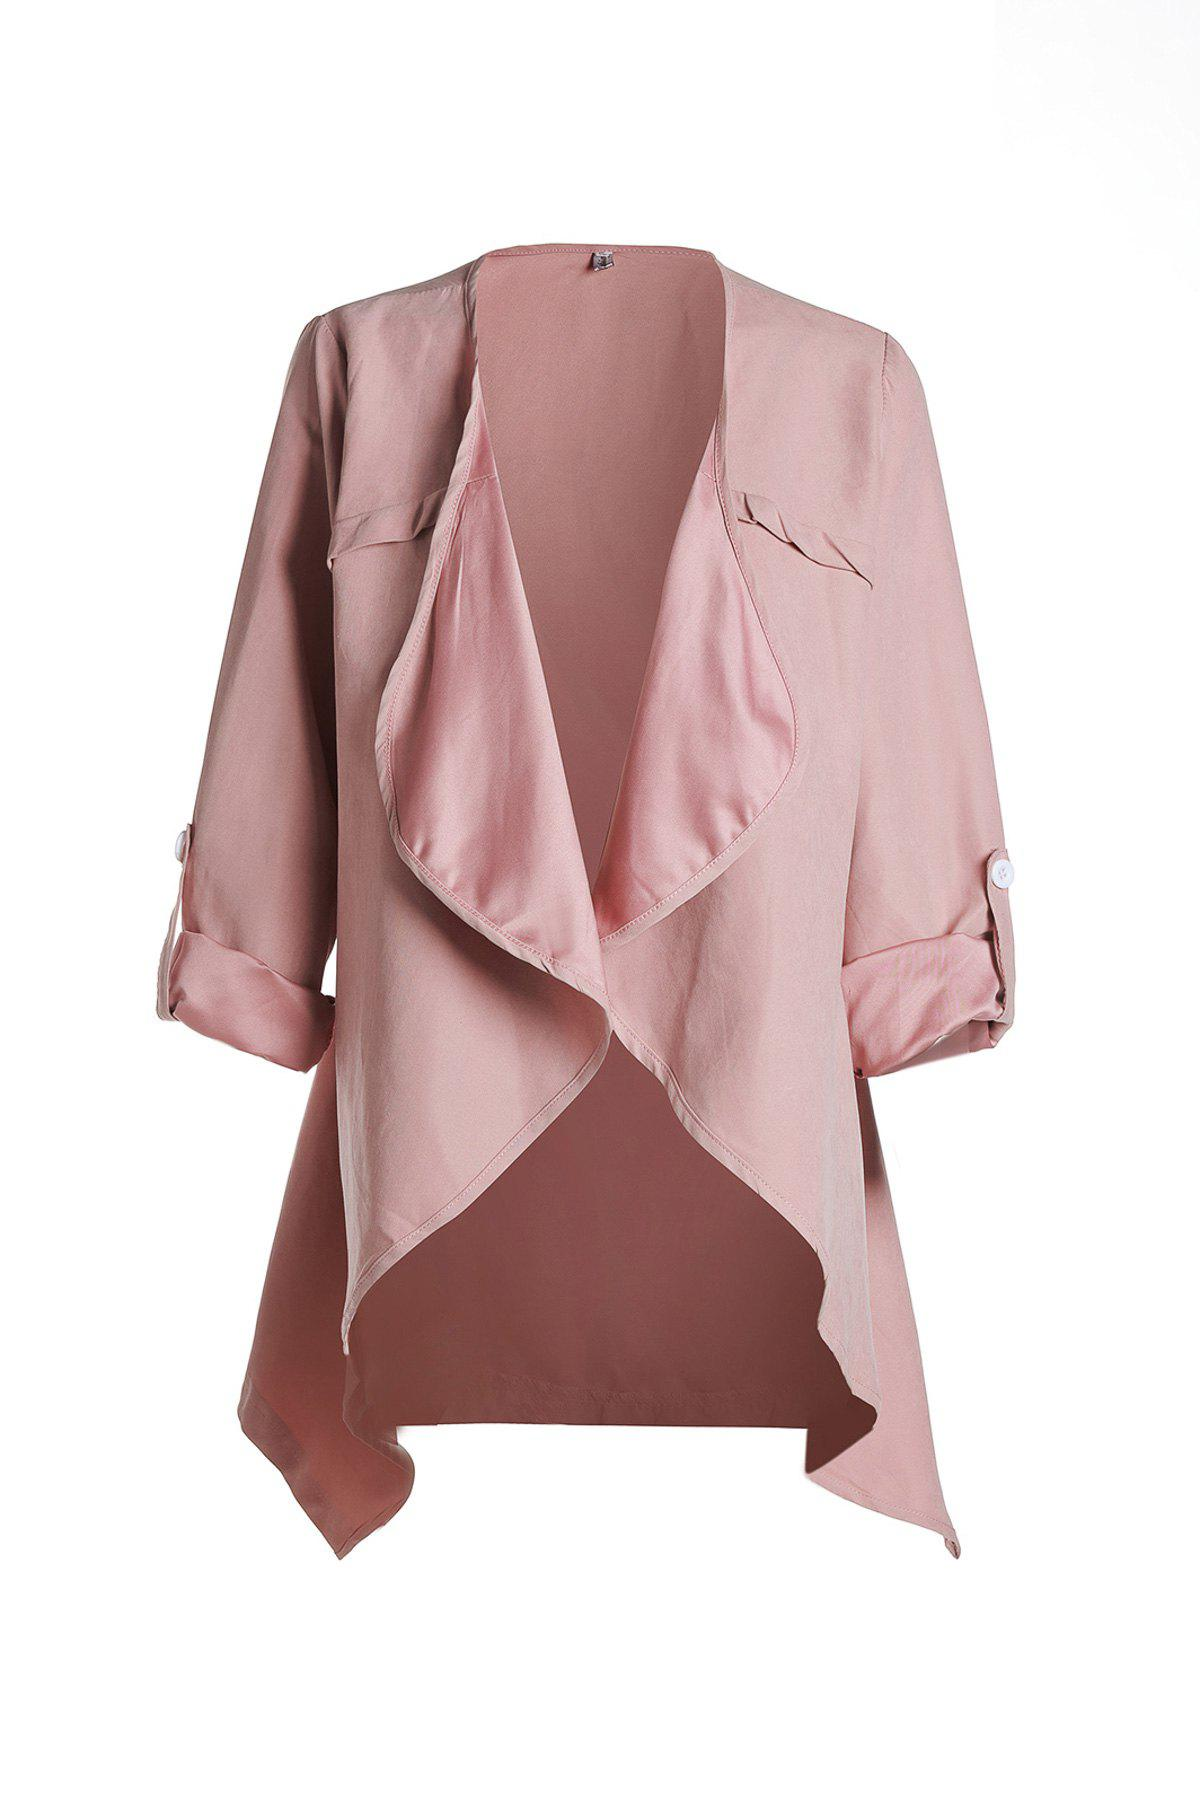 Trendy Long Sleeve Turn-Down Collar Solid Color Women's Coat - 2XL PINK